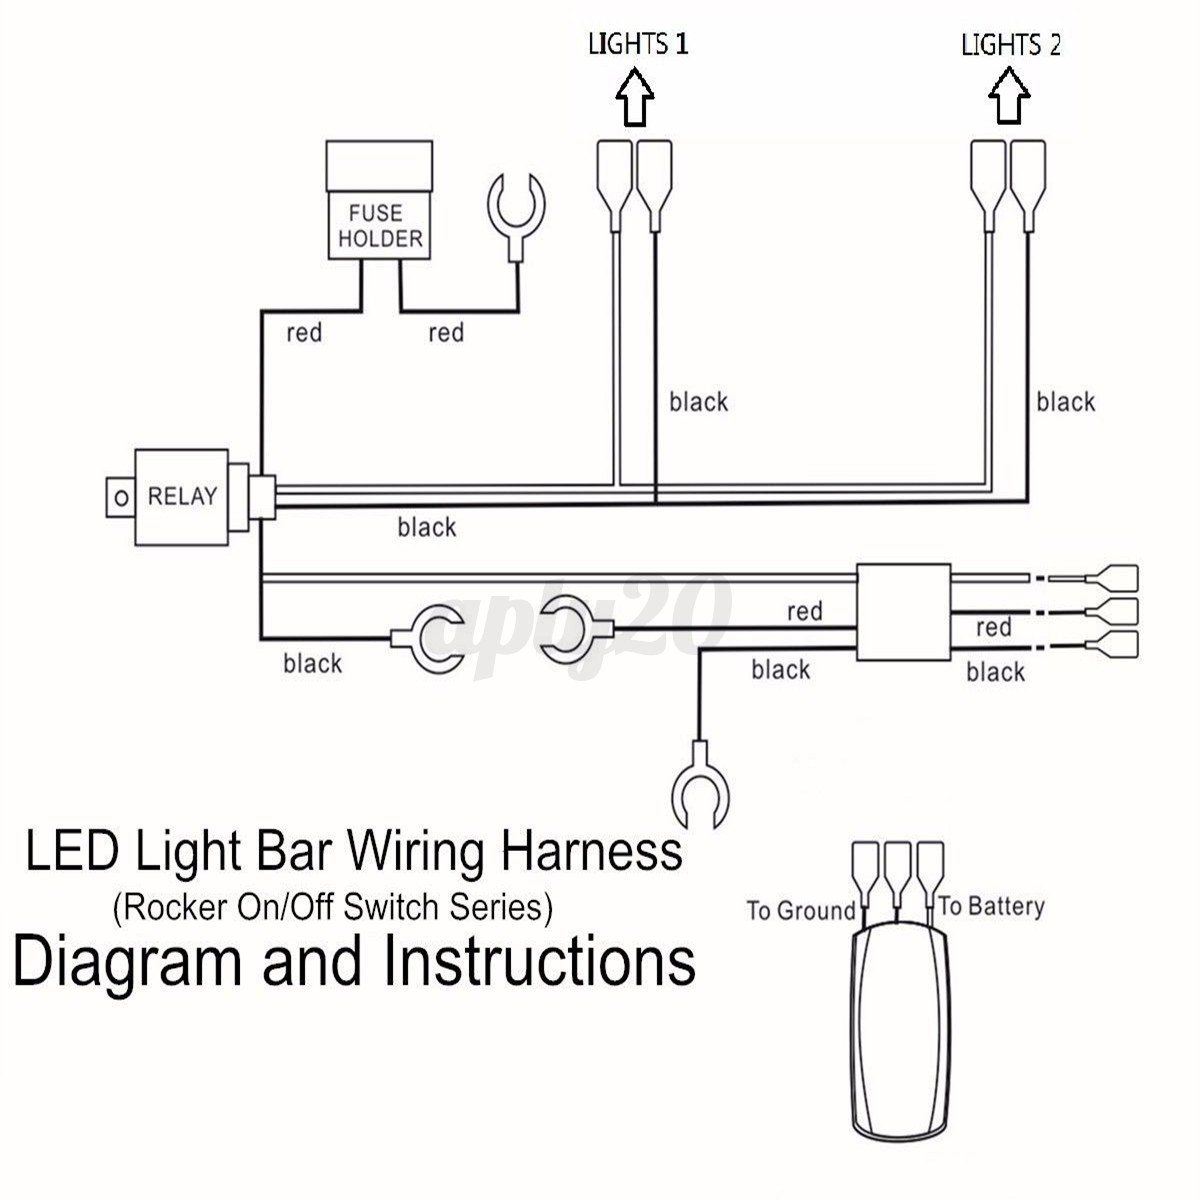 led light bar wiring harness diagram diagram